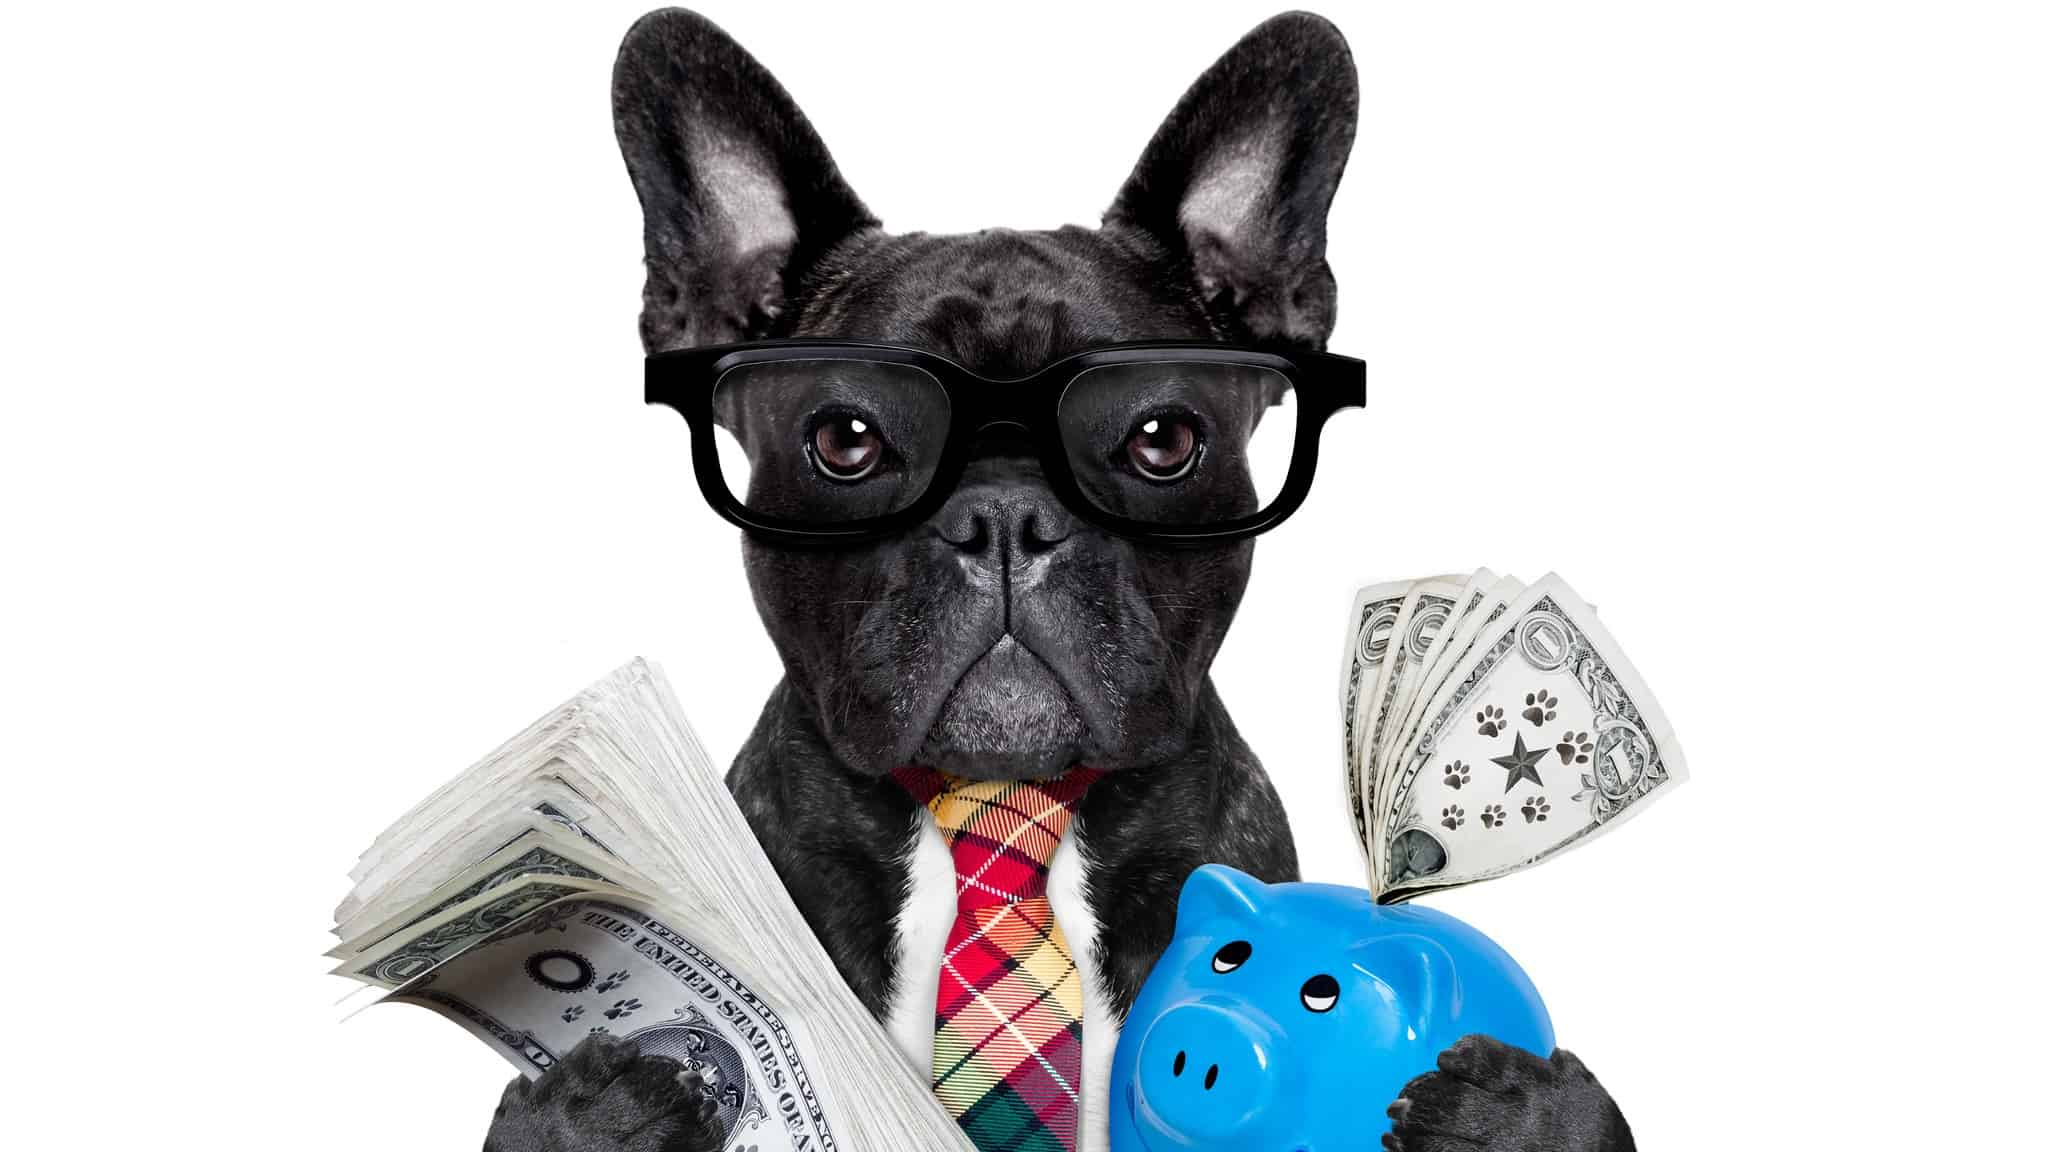 getting growth and cincome from asx shares represented by dog holding cash in one hand and a piggy bank in the other